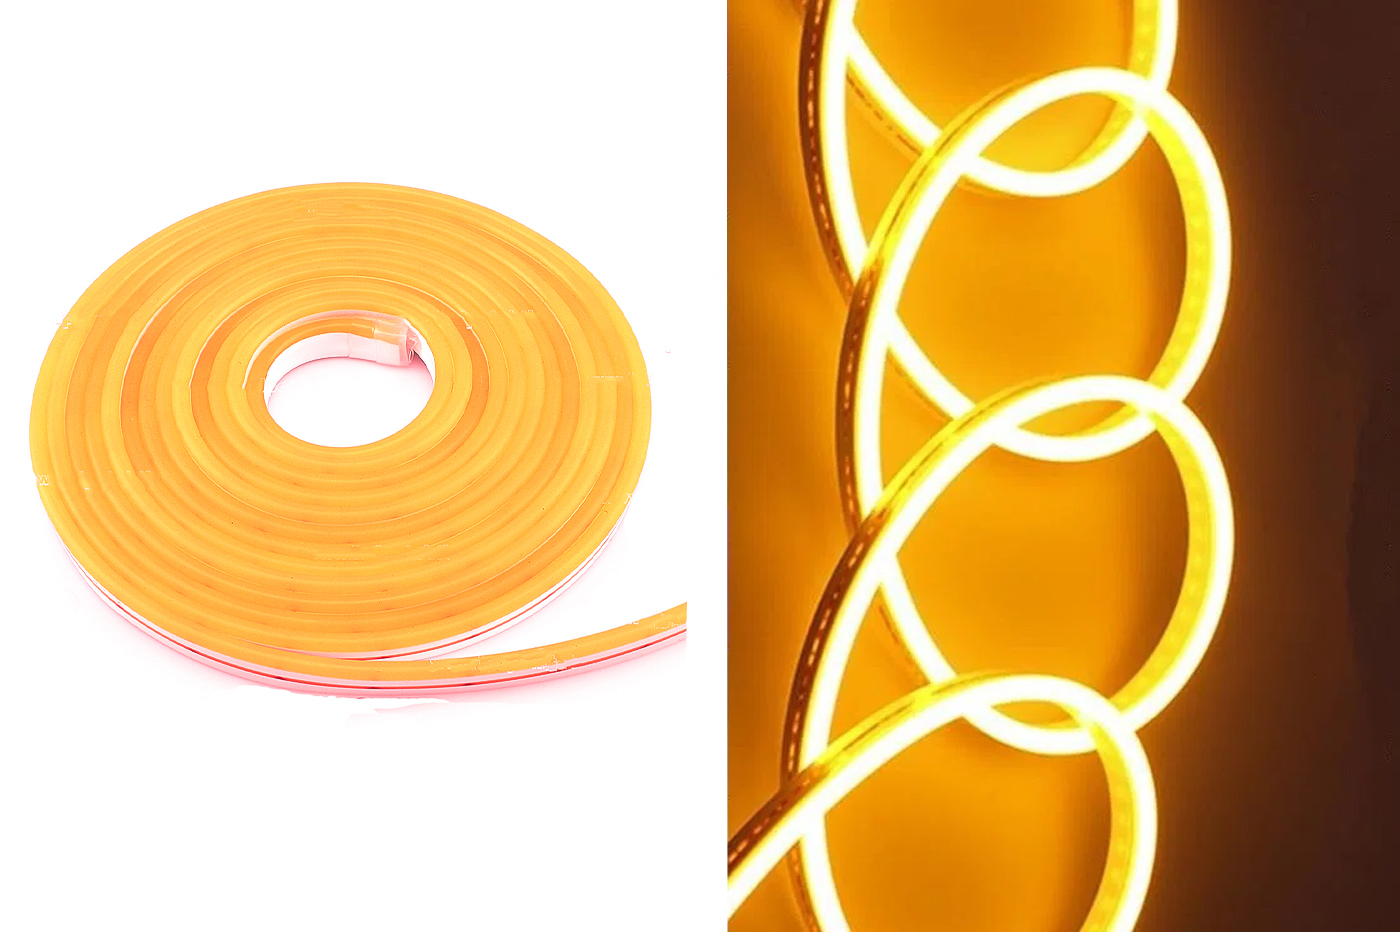 Striscia led neon 5m tubo flessibile luminoso 120led strip led bobina arancione